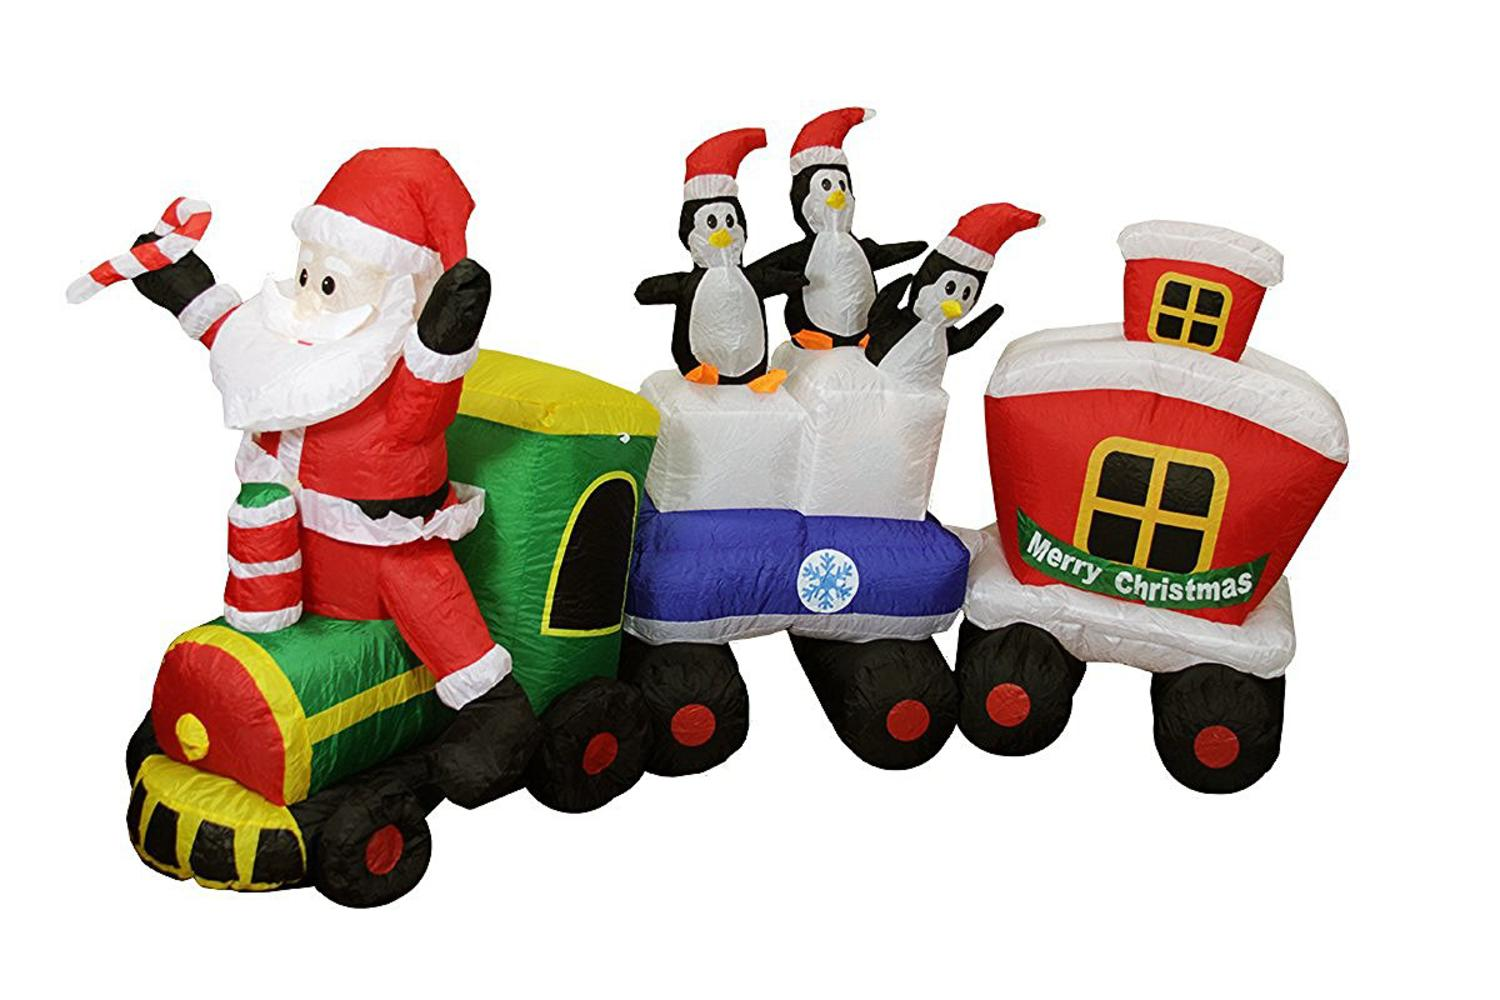 82 Inflatable Lighted Santa Express Train Christmas Yard Art Decoration